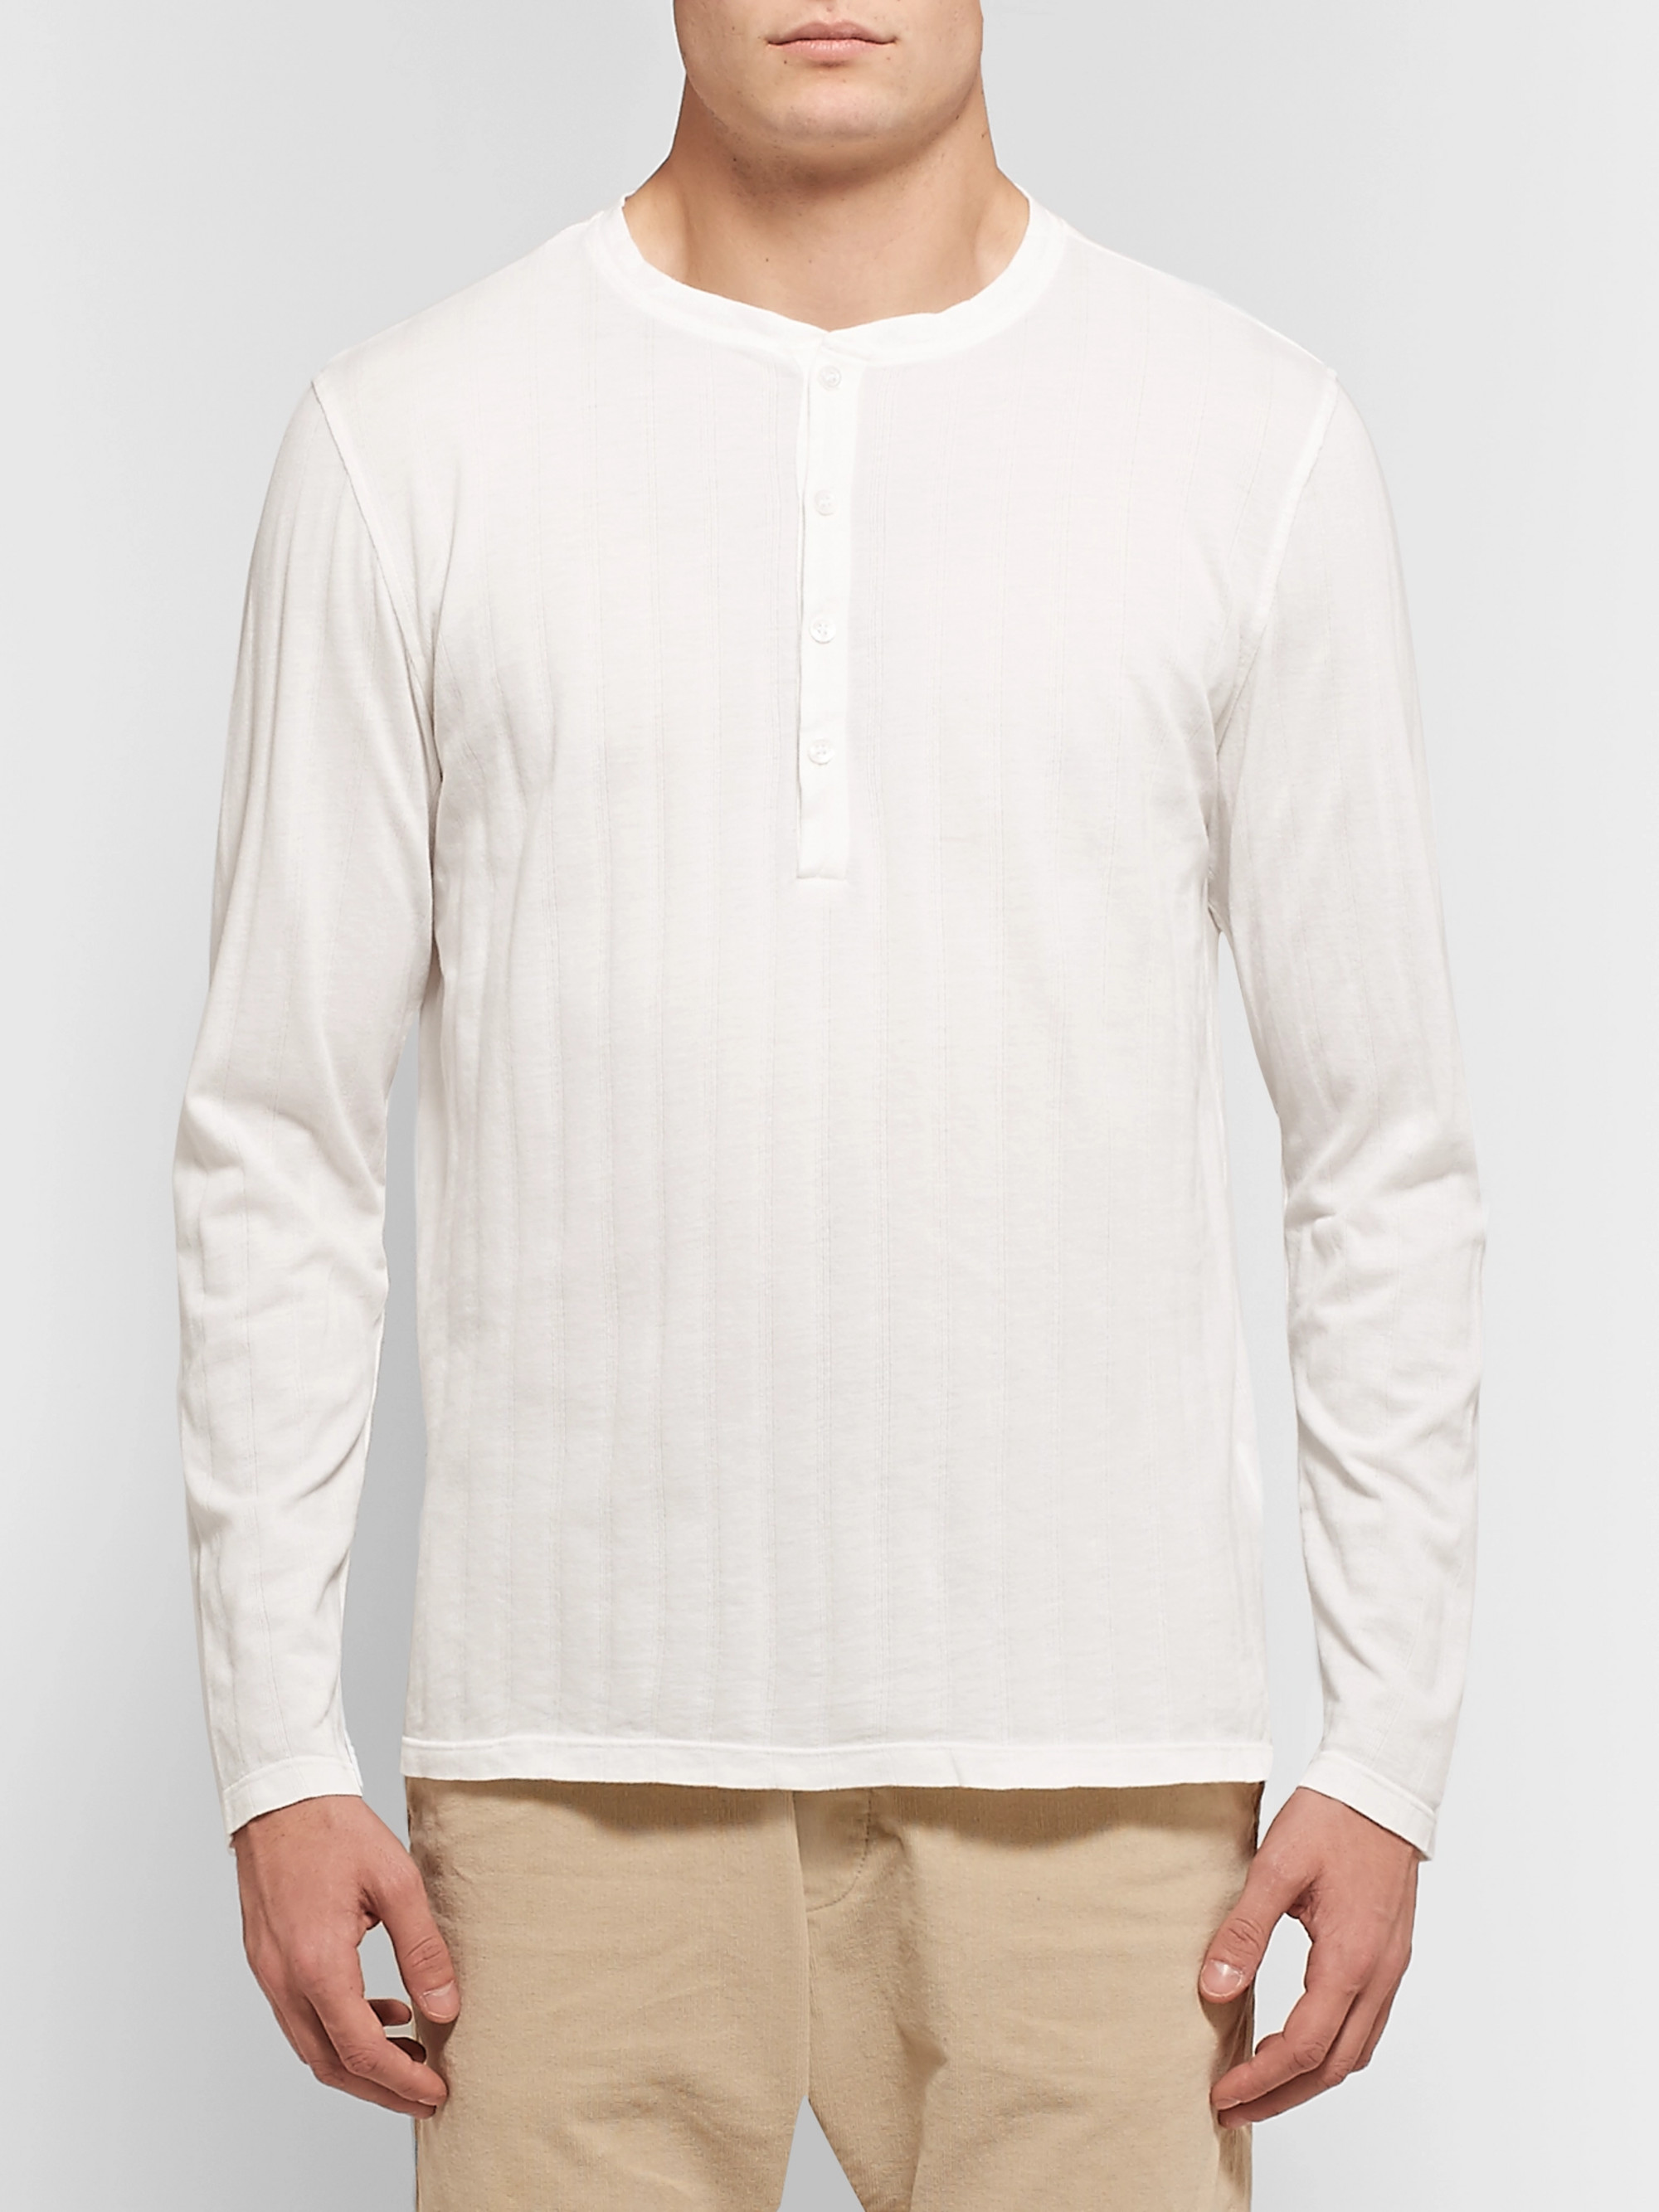 Barena Tatara Striped Cotton-Piqué Henley T-Shirt